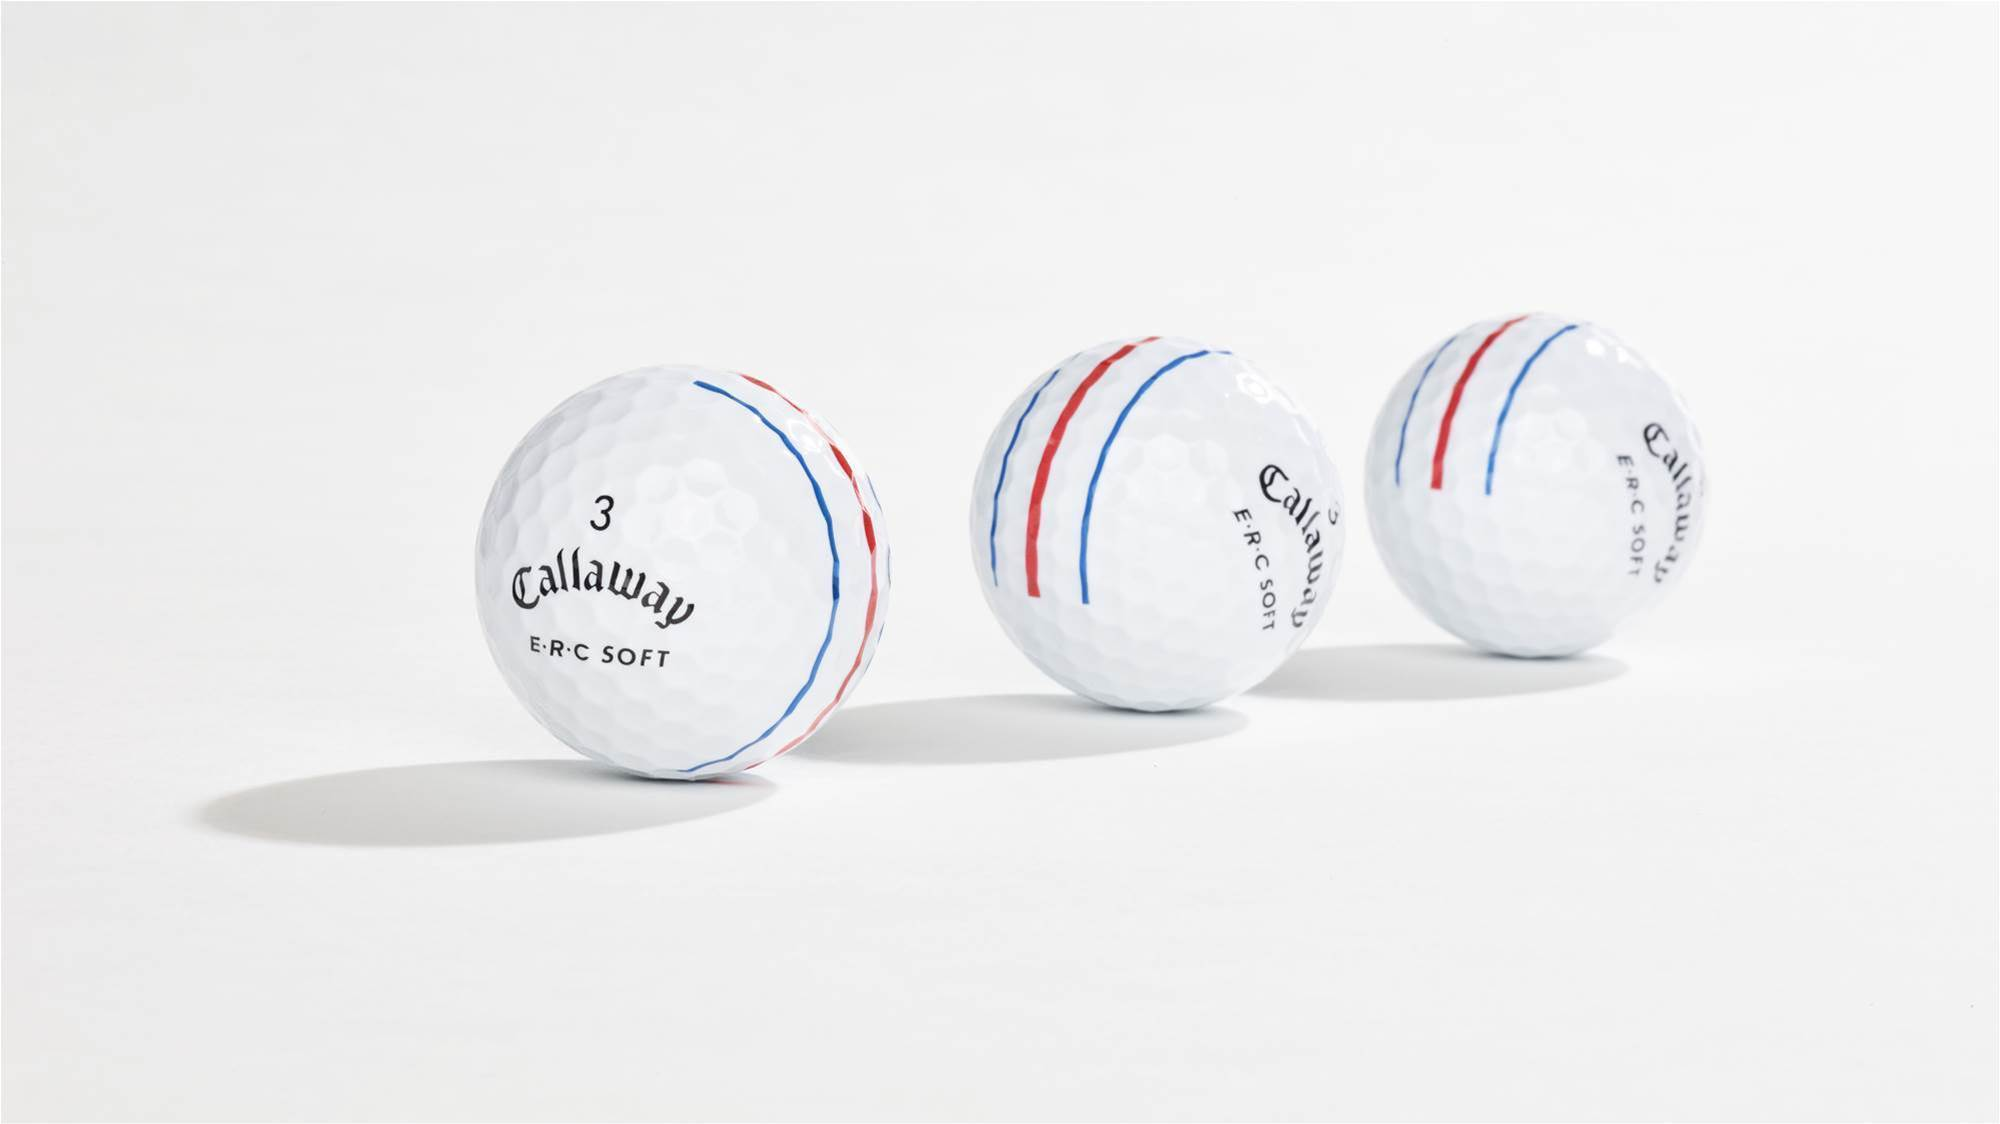 Callaway expand golf ball offering